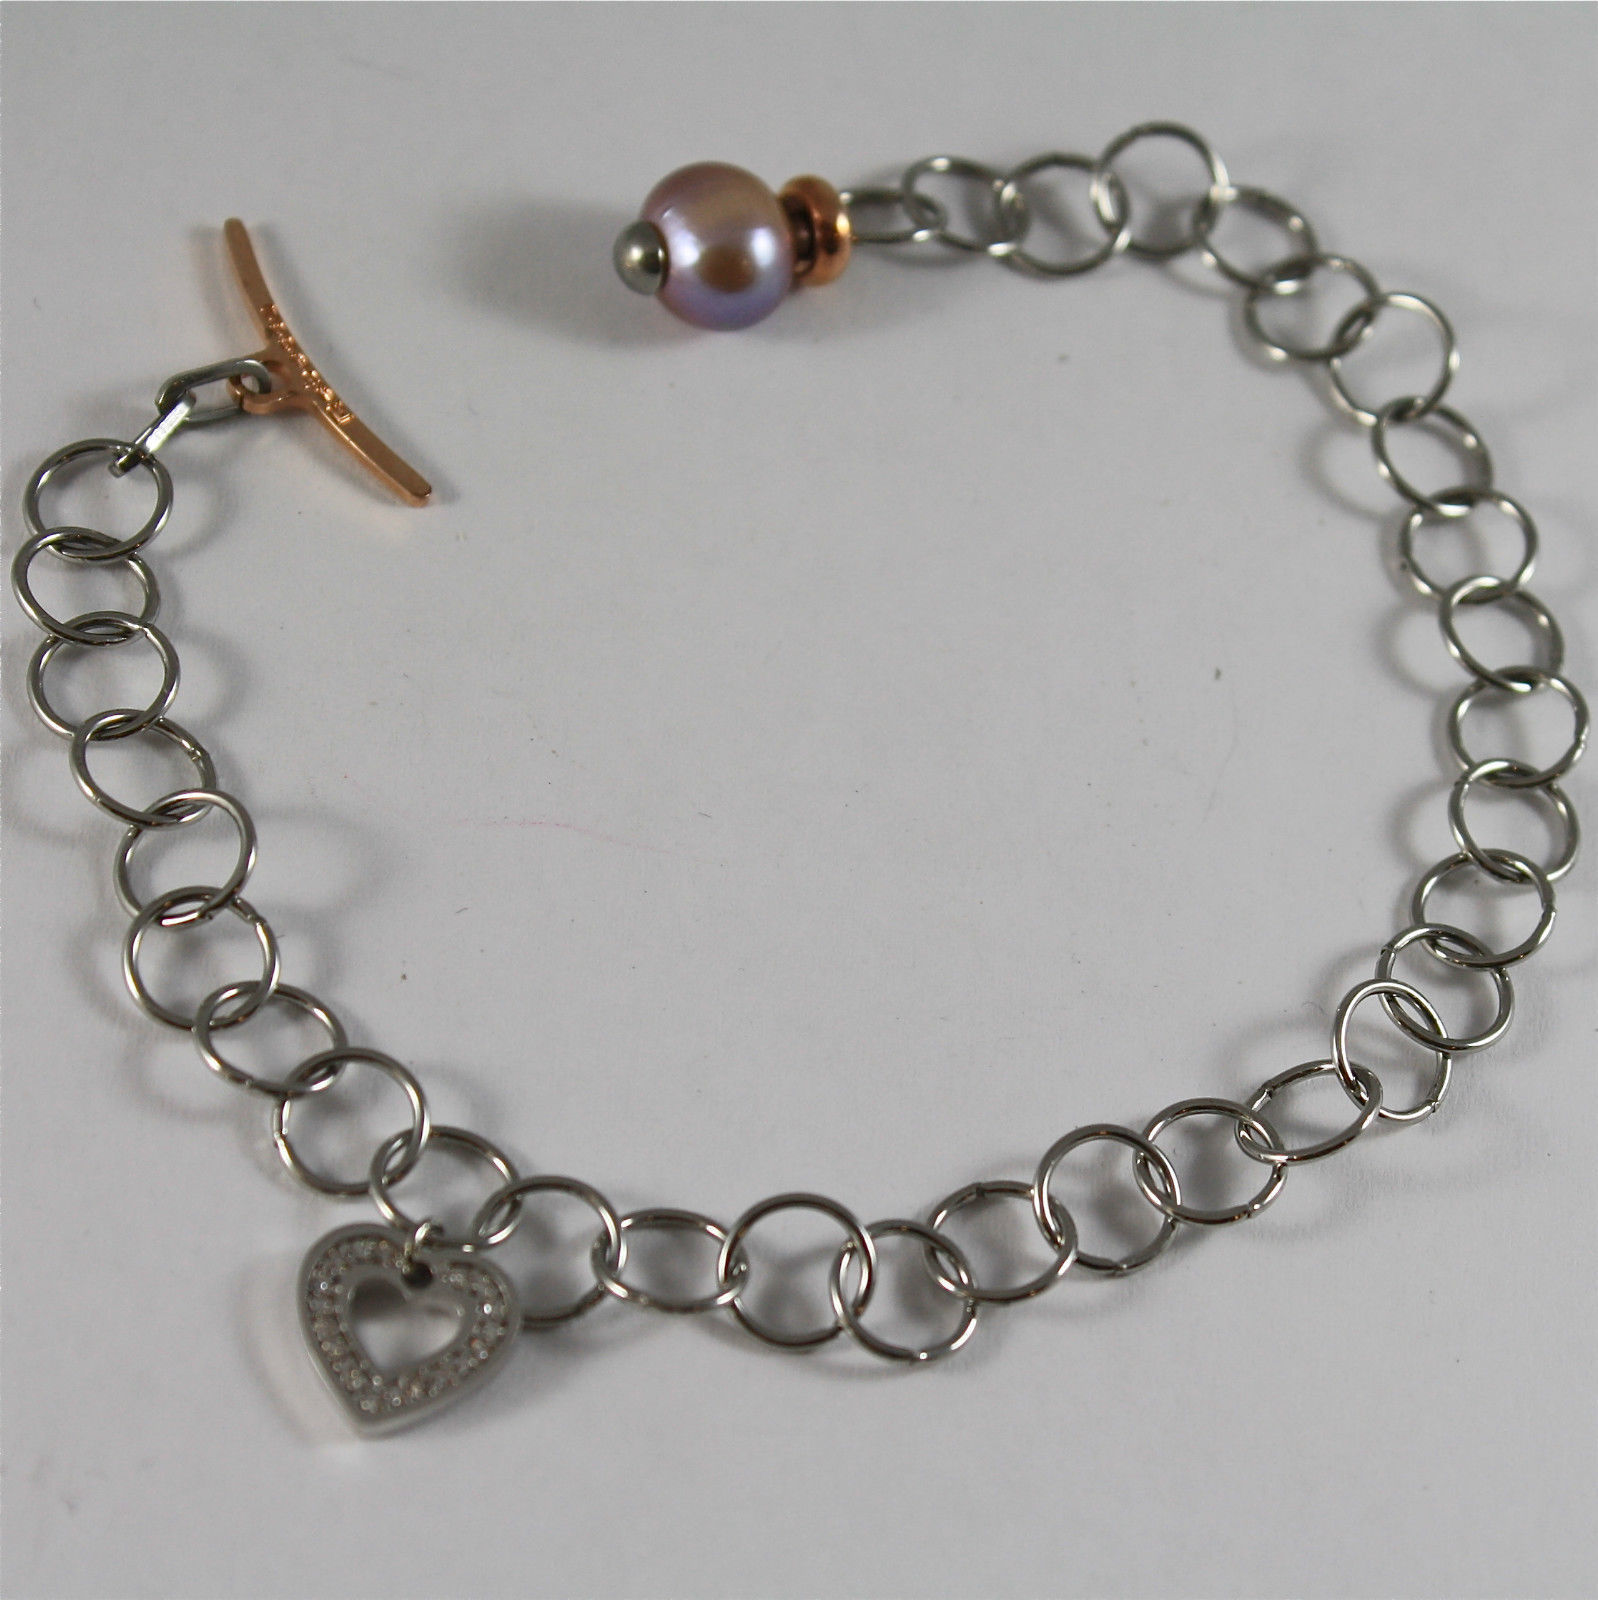 RHODIUM-PLATED BRONZE BRACELET WITH CHARMS AND PEARL, BY REBECCA MADE IN ITALY.